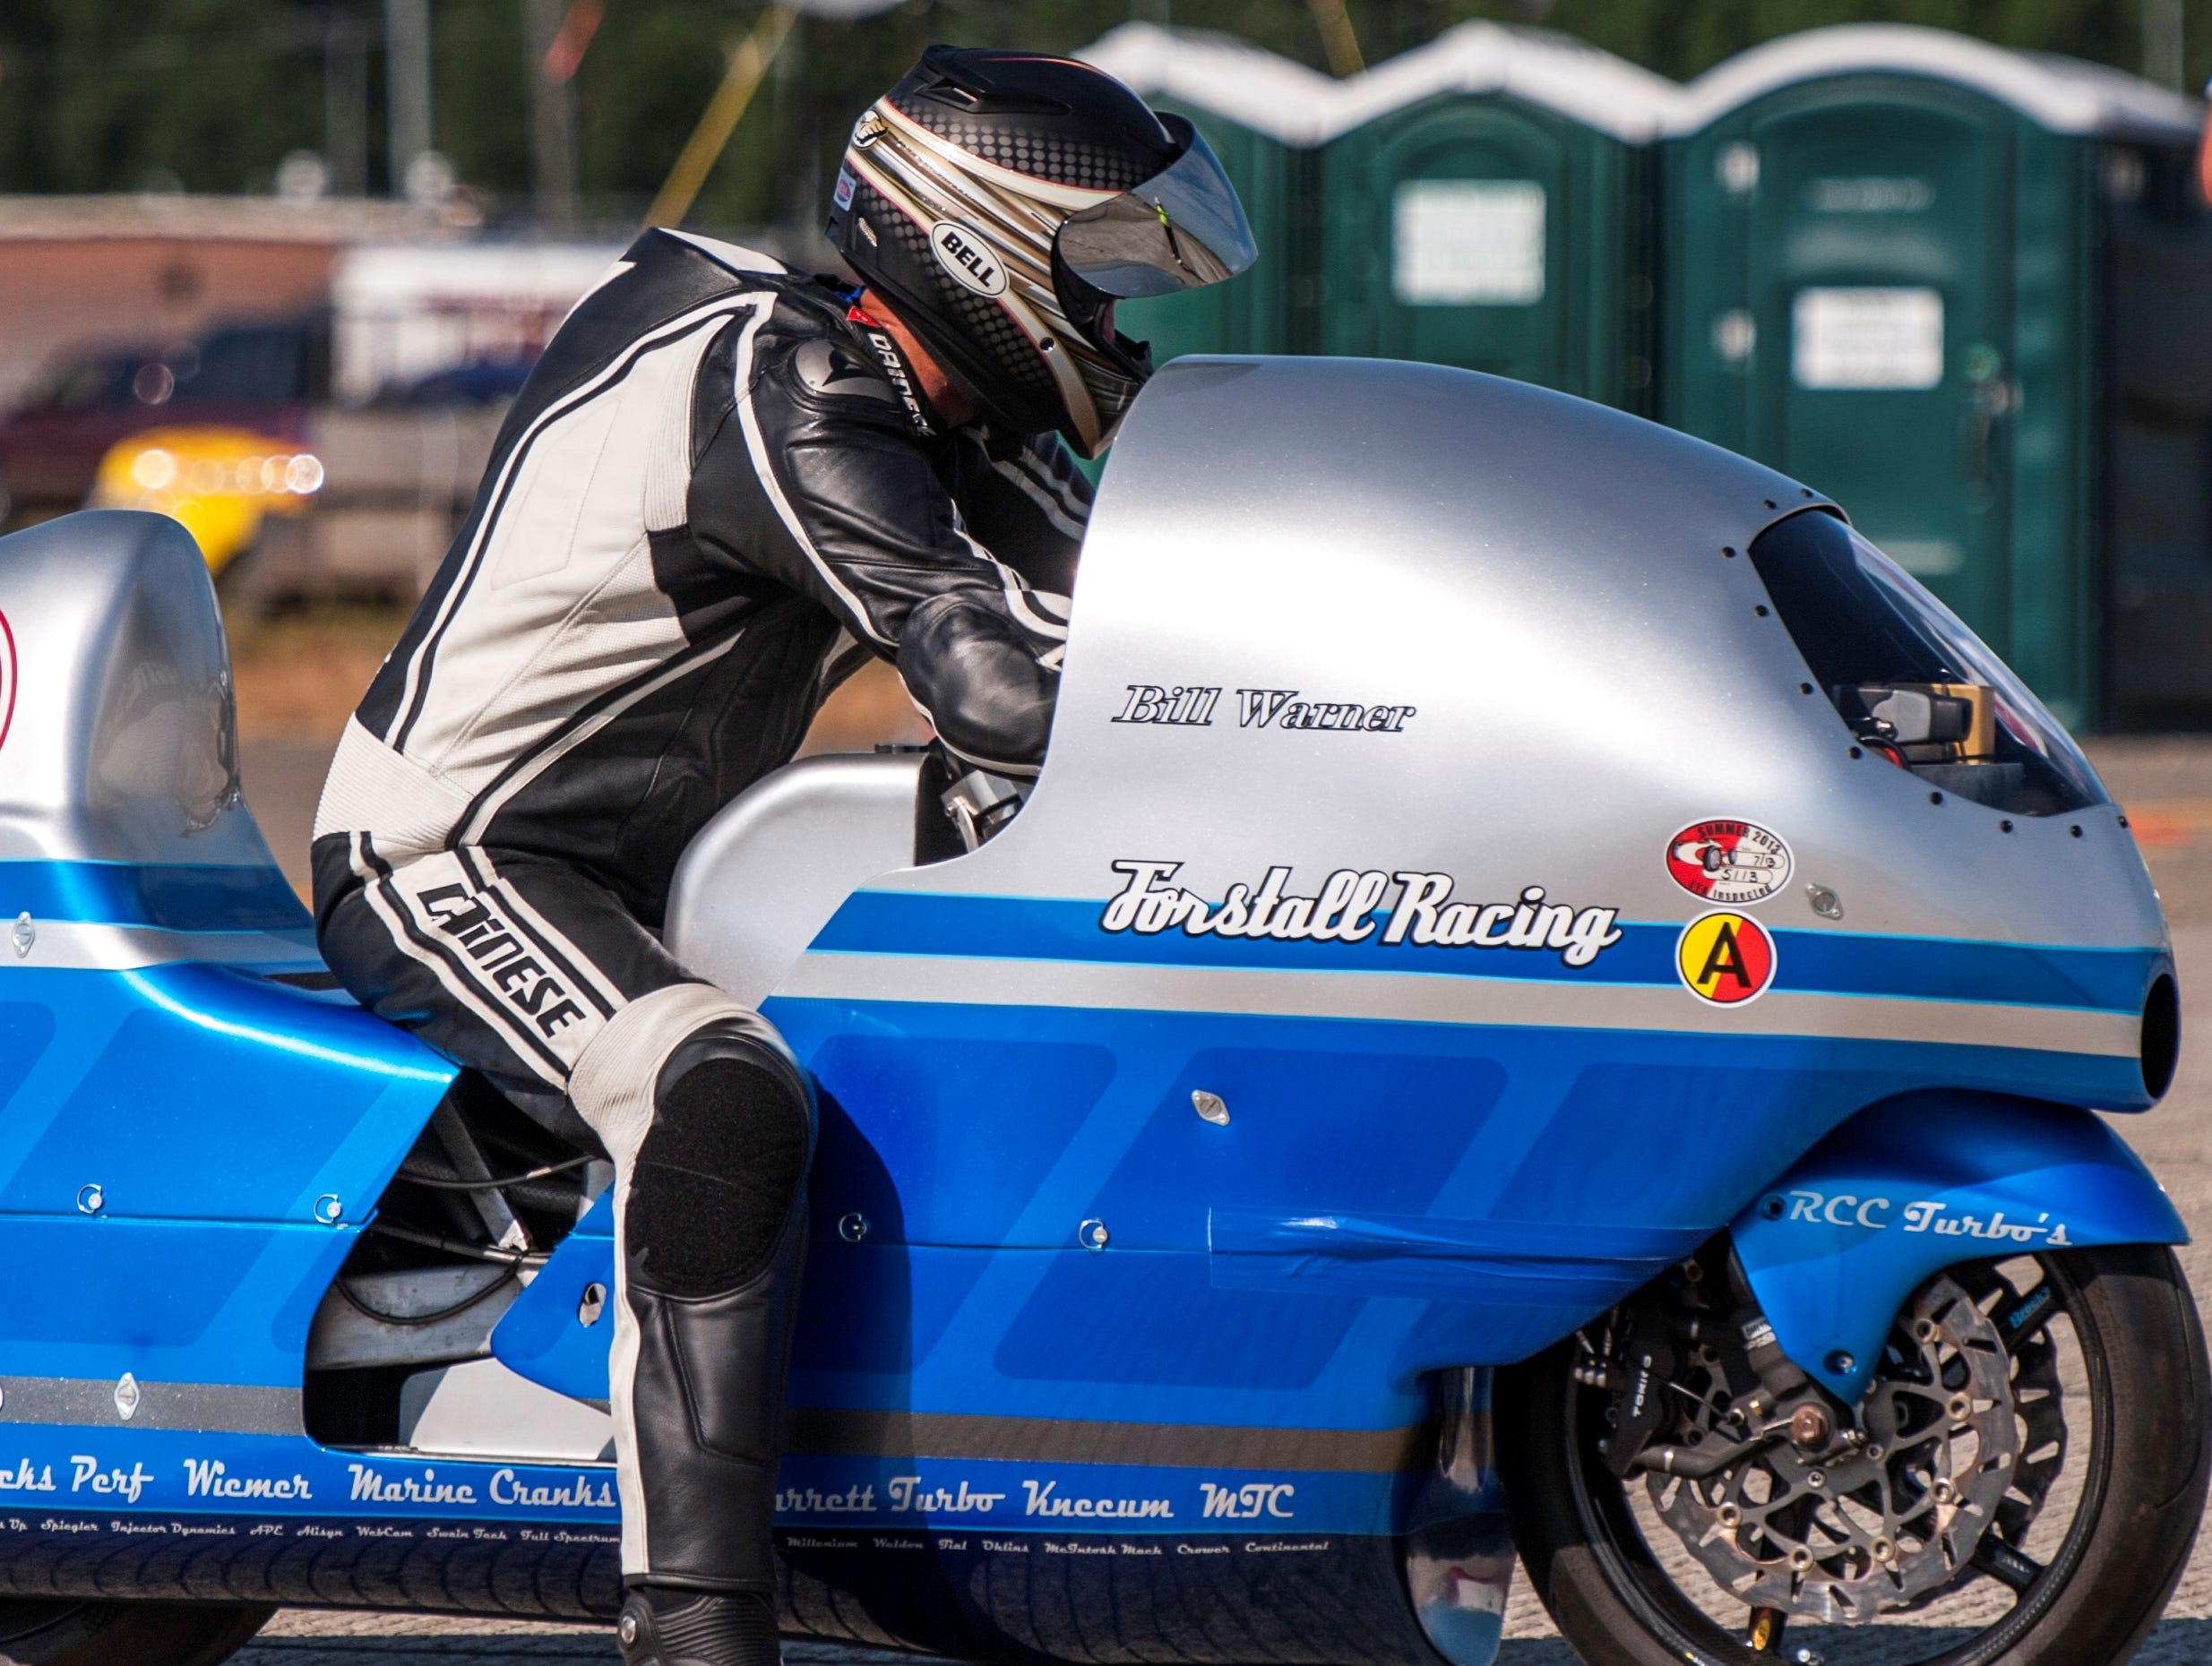 man dies in motorcycle crash trying to reach 300 mph rh usatoday com